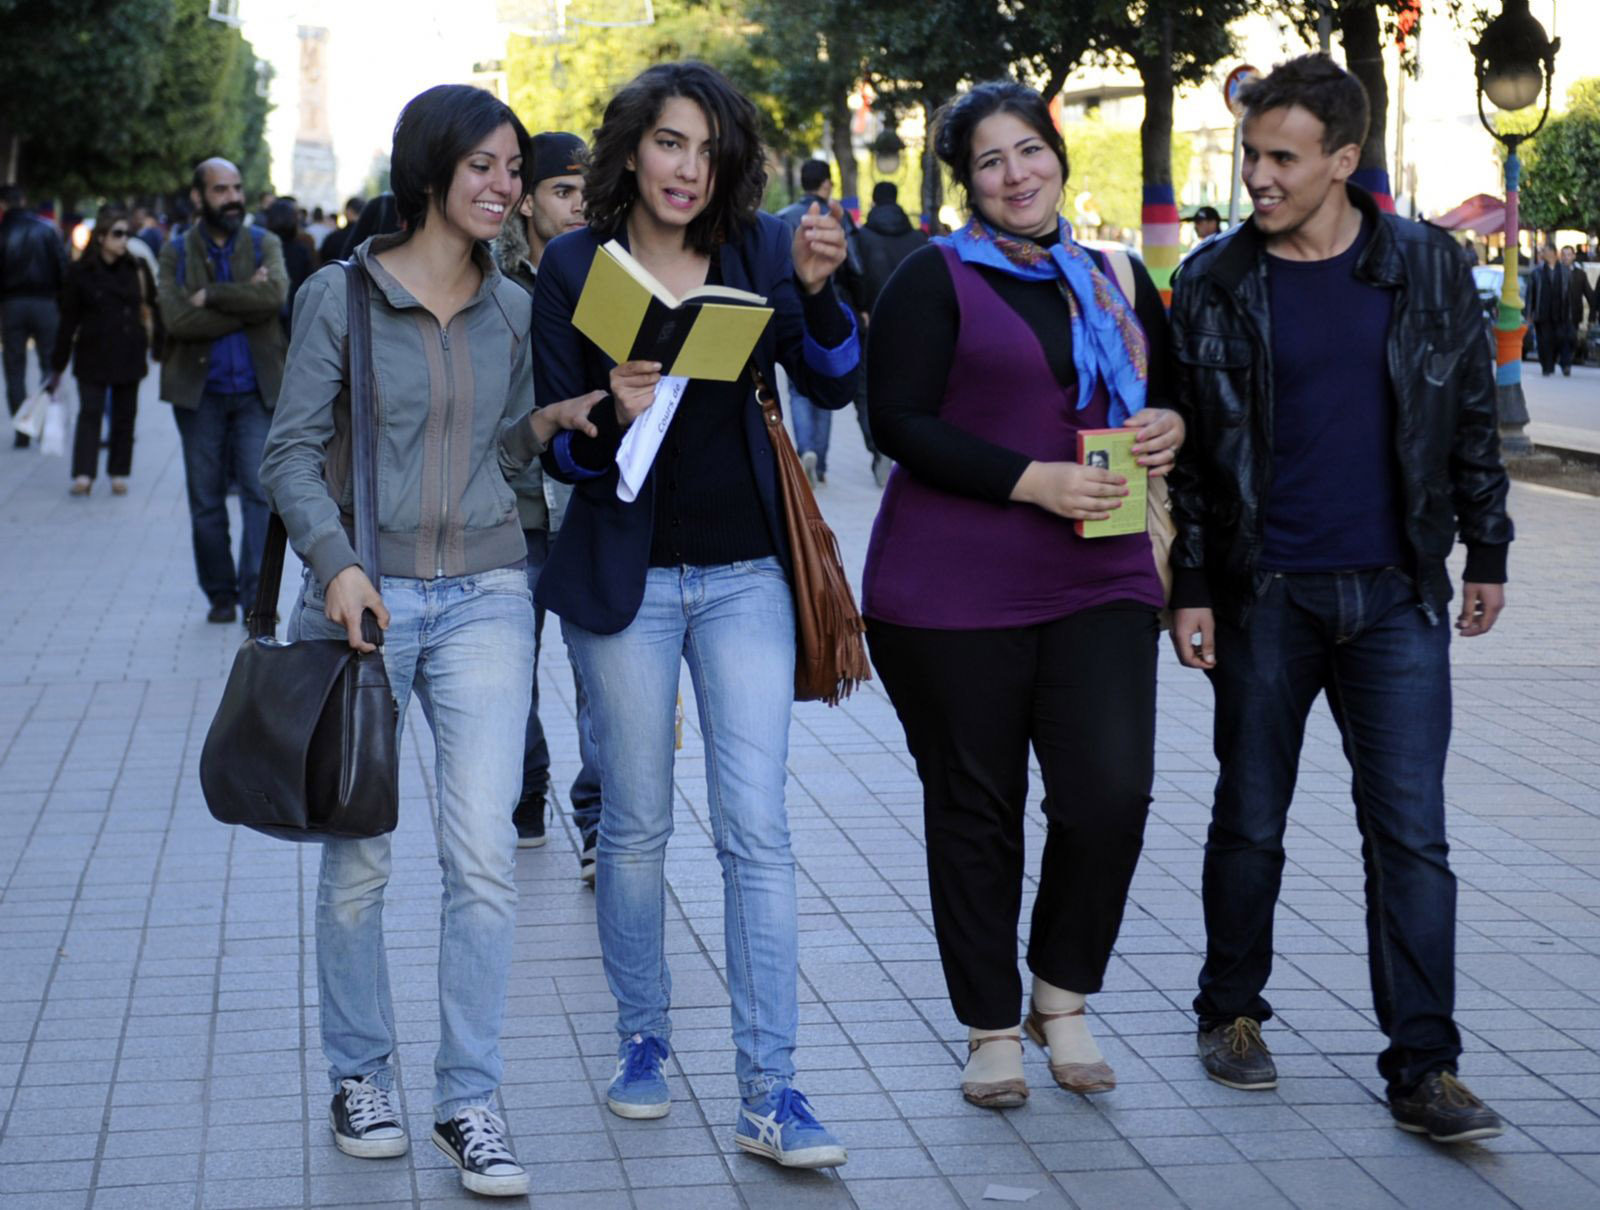 More than one language. Young Tunisians, some of them holding books, walk in the Avenue Habib Bourguiba in Tunis.   (AFP)